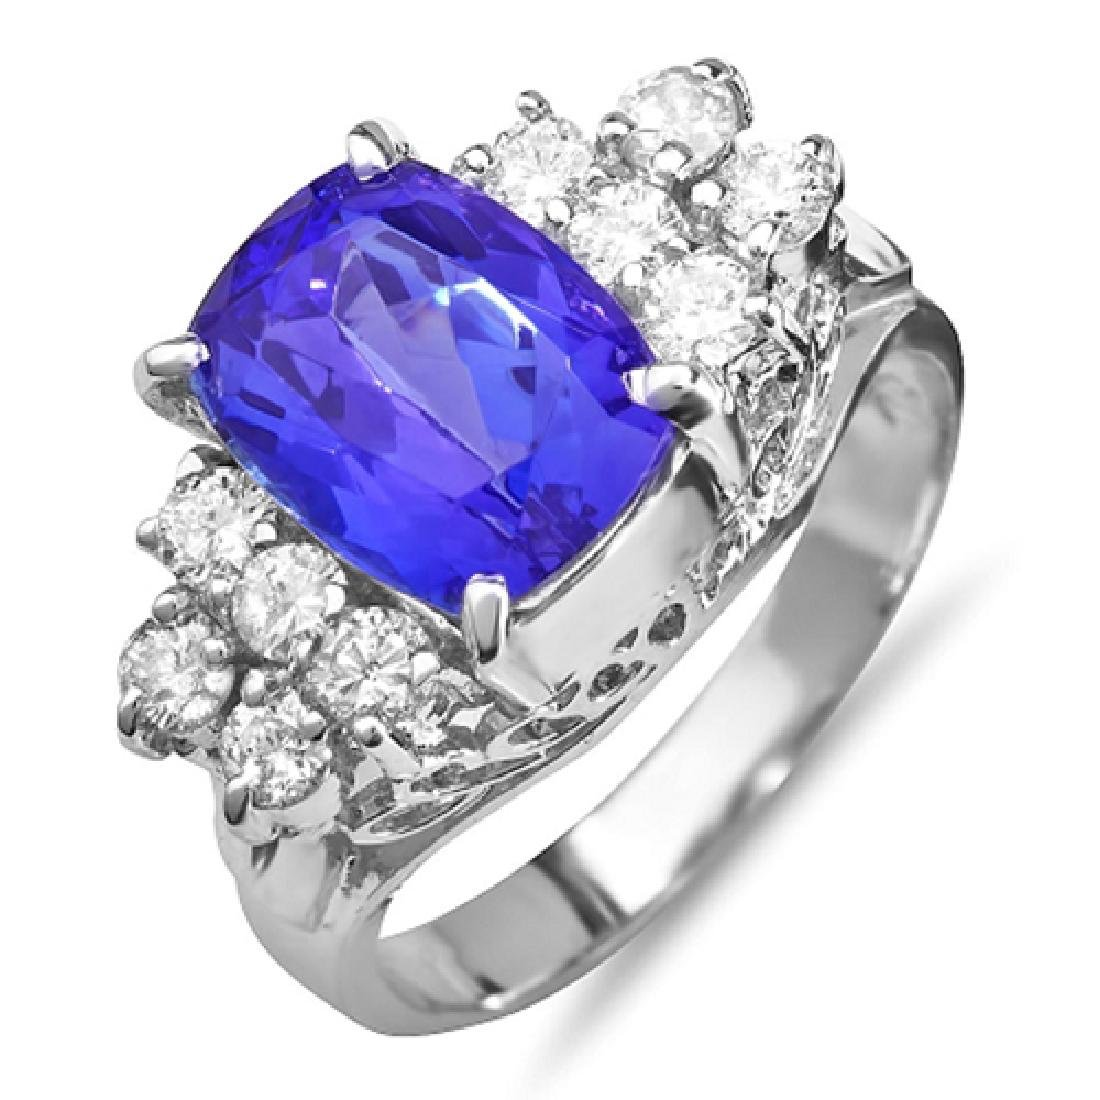 4.31 Carat Natural Tanzanite 18K Solid White Gold